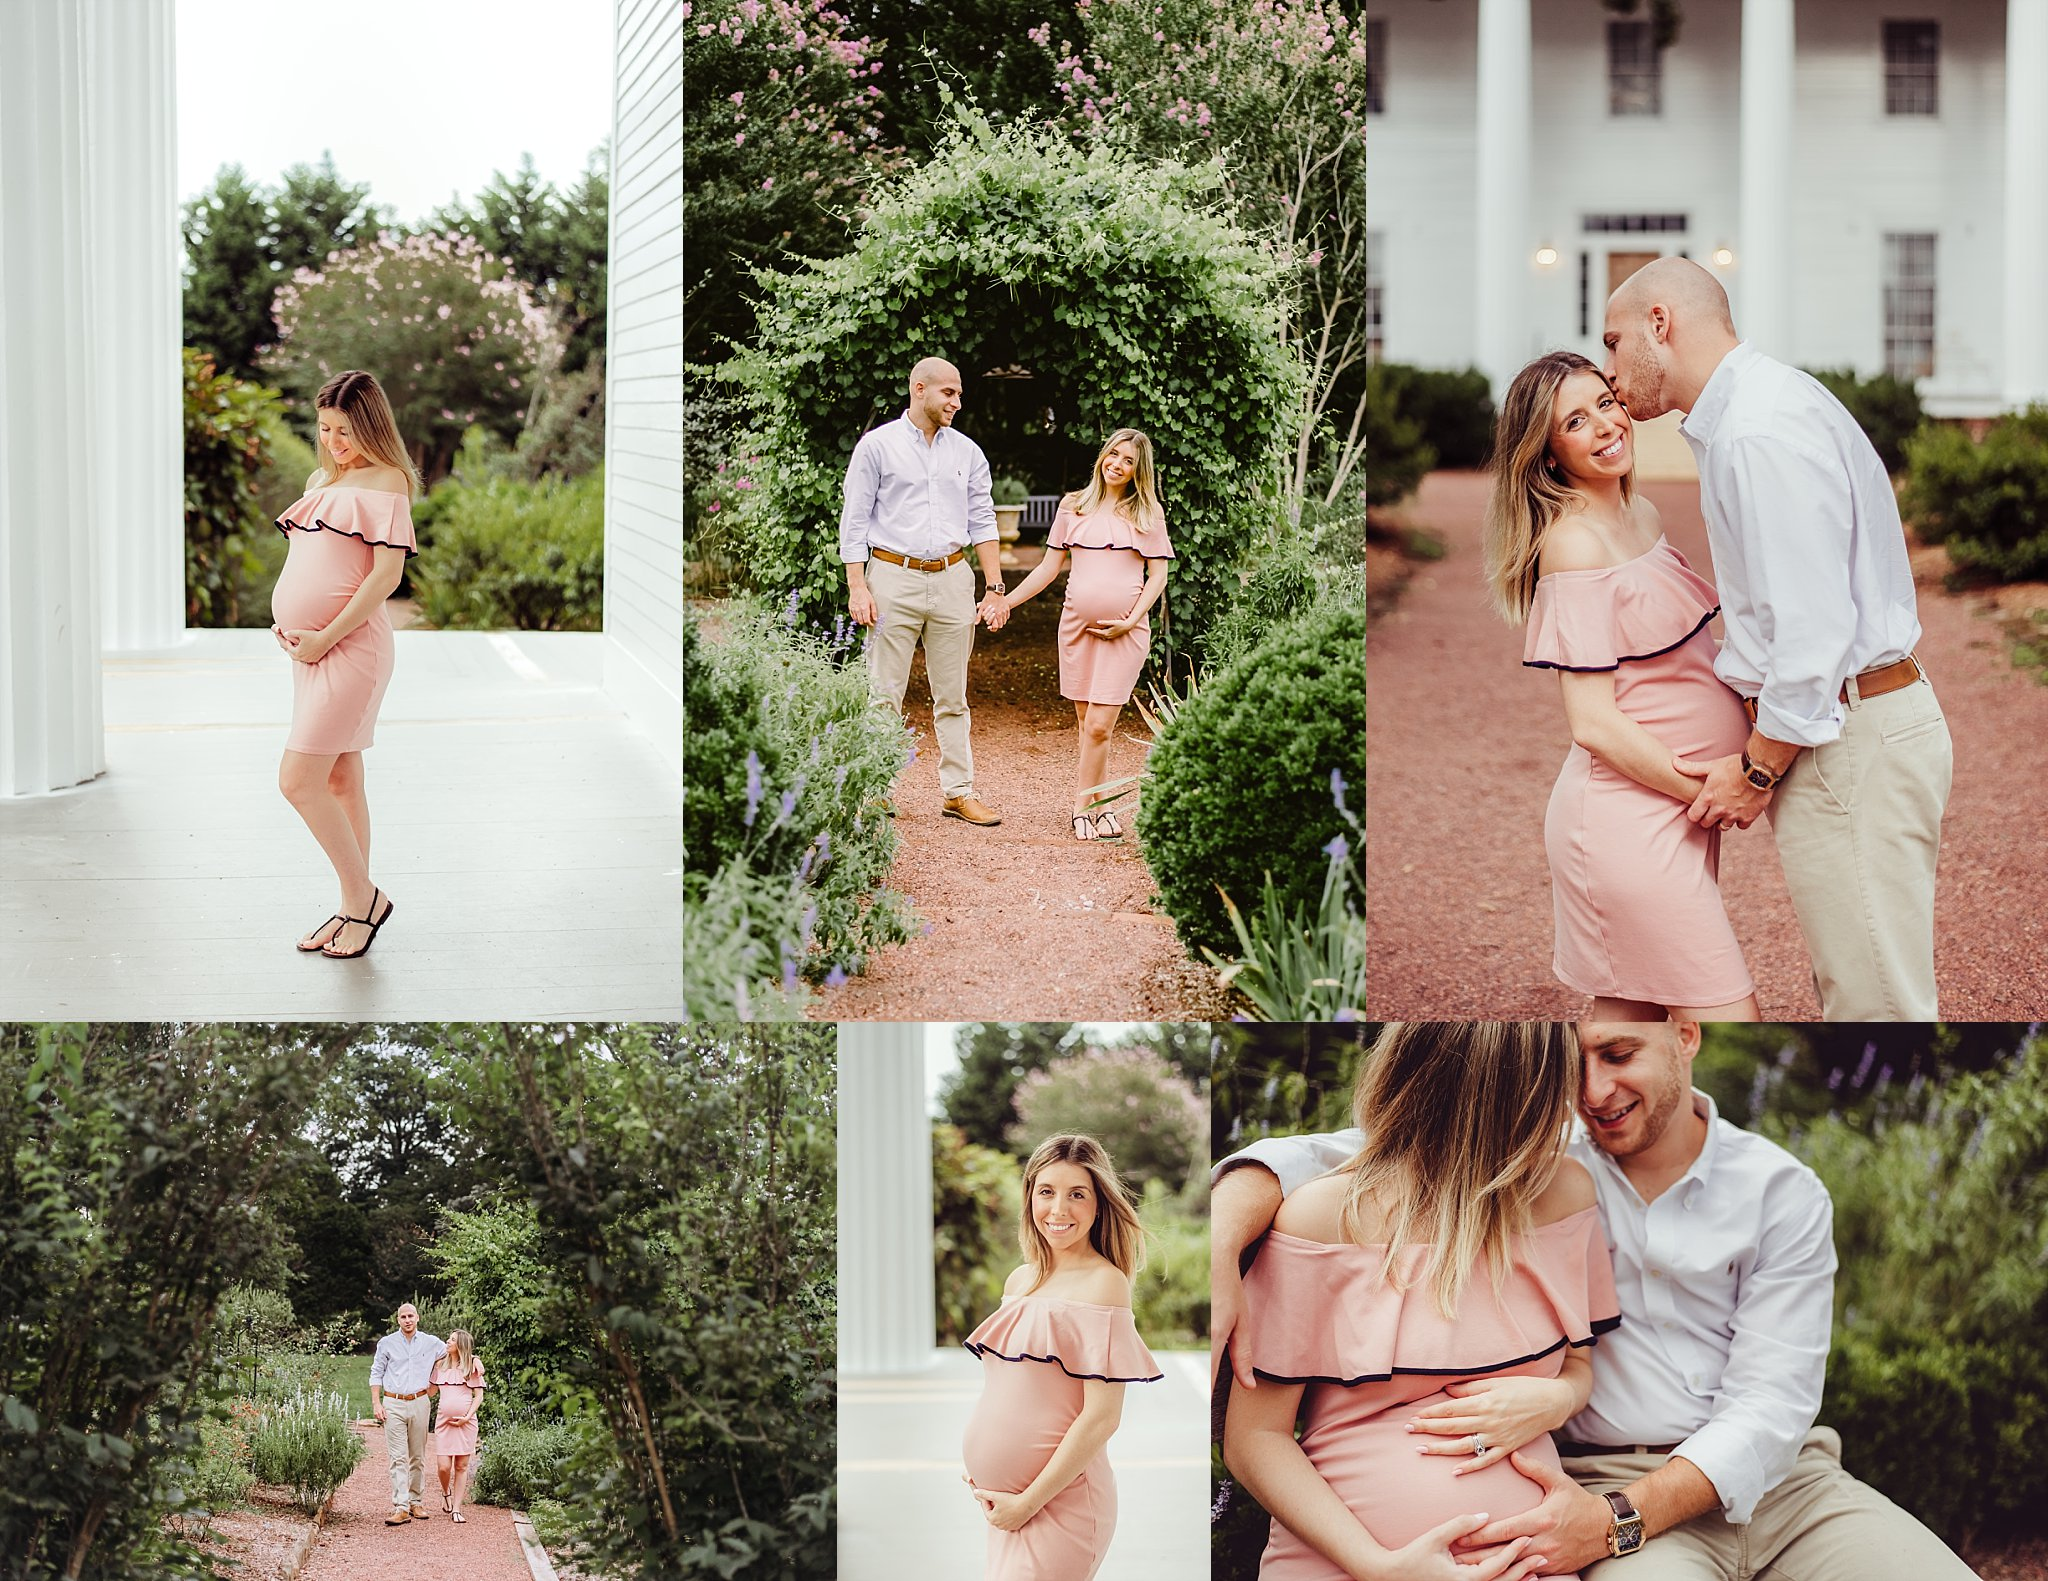 Maternity photo shoot at Barrington Hall in Historic Downtown Roswell, GA